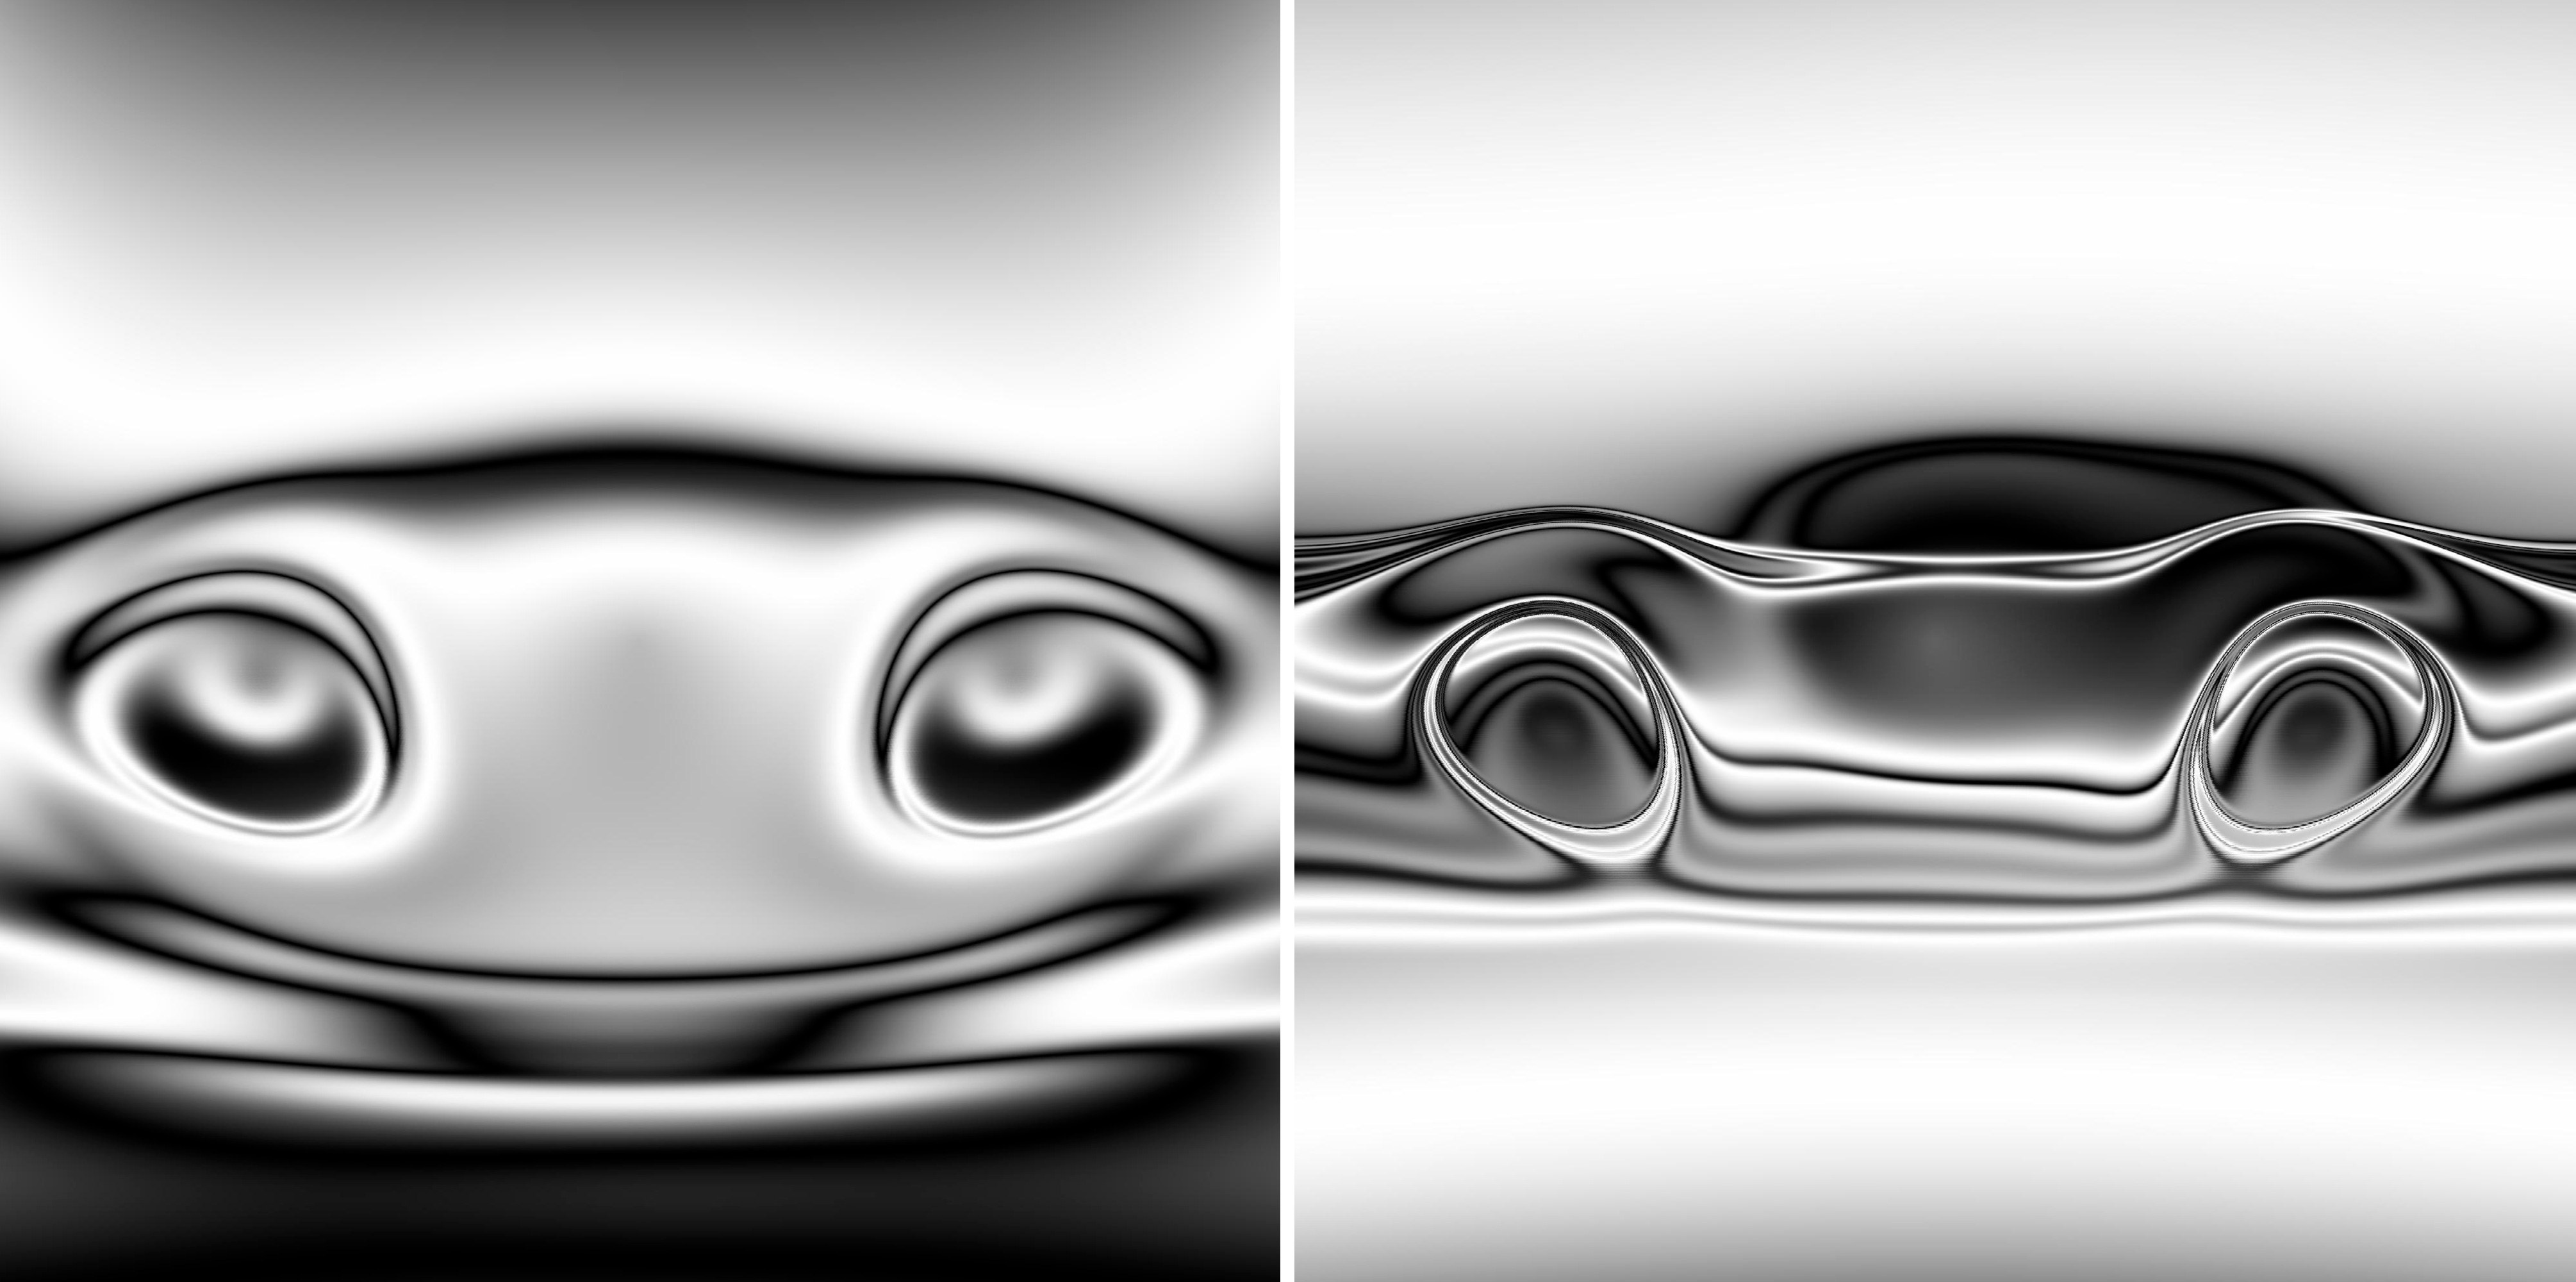 Alien and racecar abstract images.